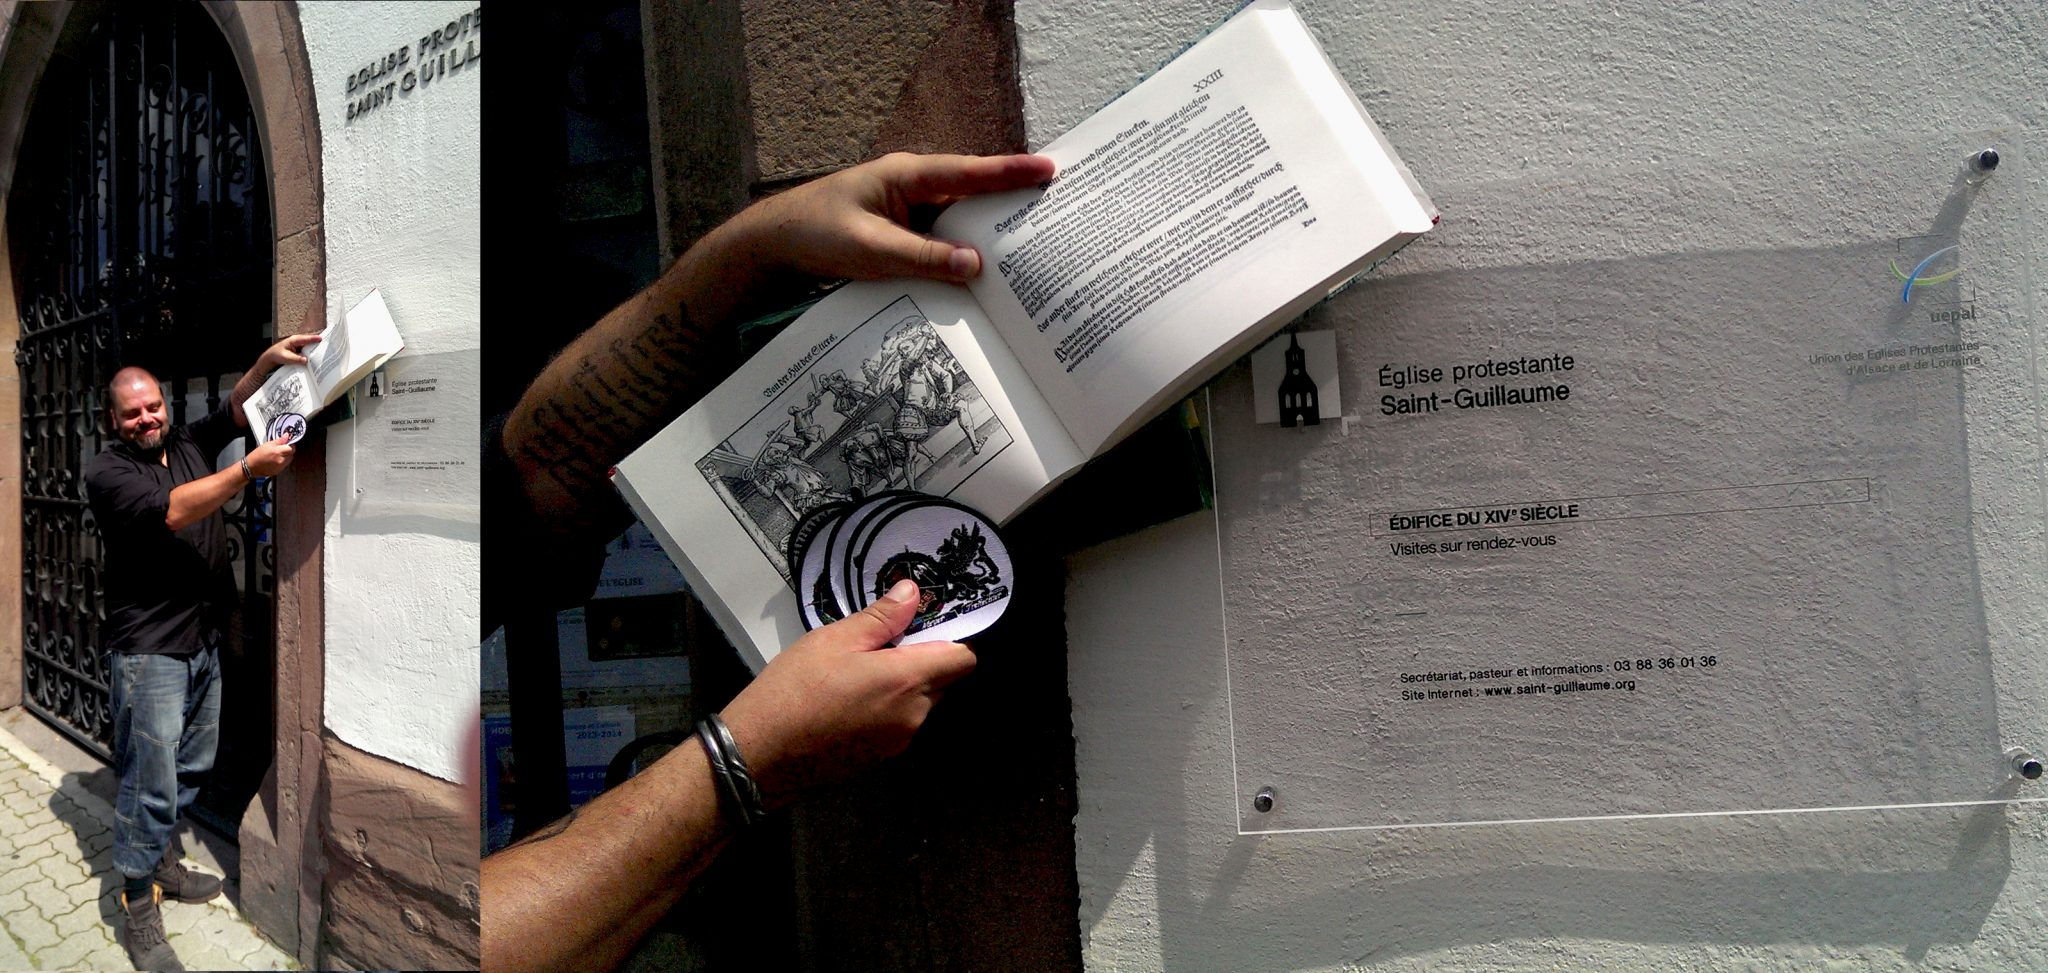 Consecrating my Meyer books and club patches by touching the church